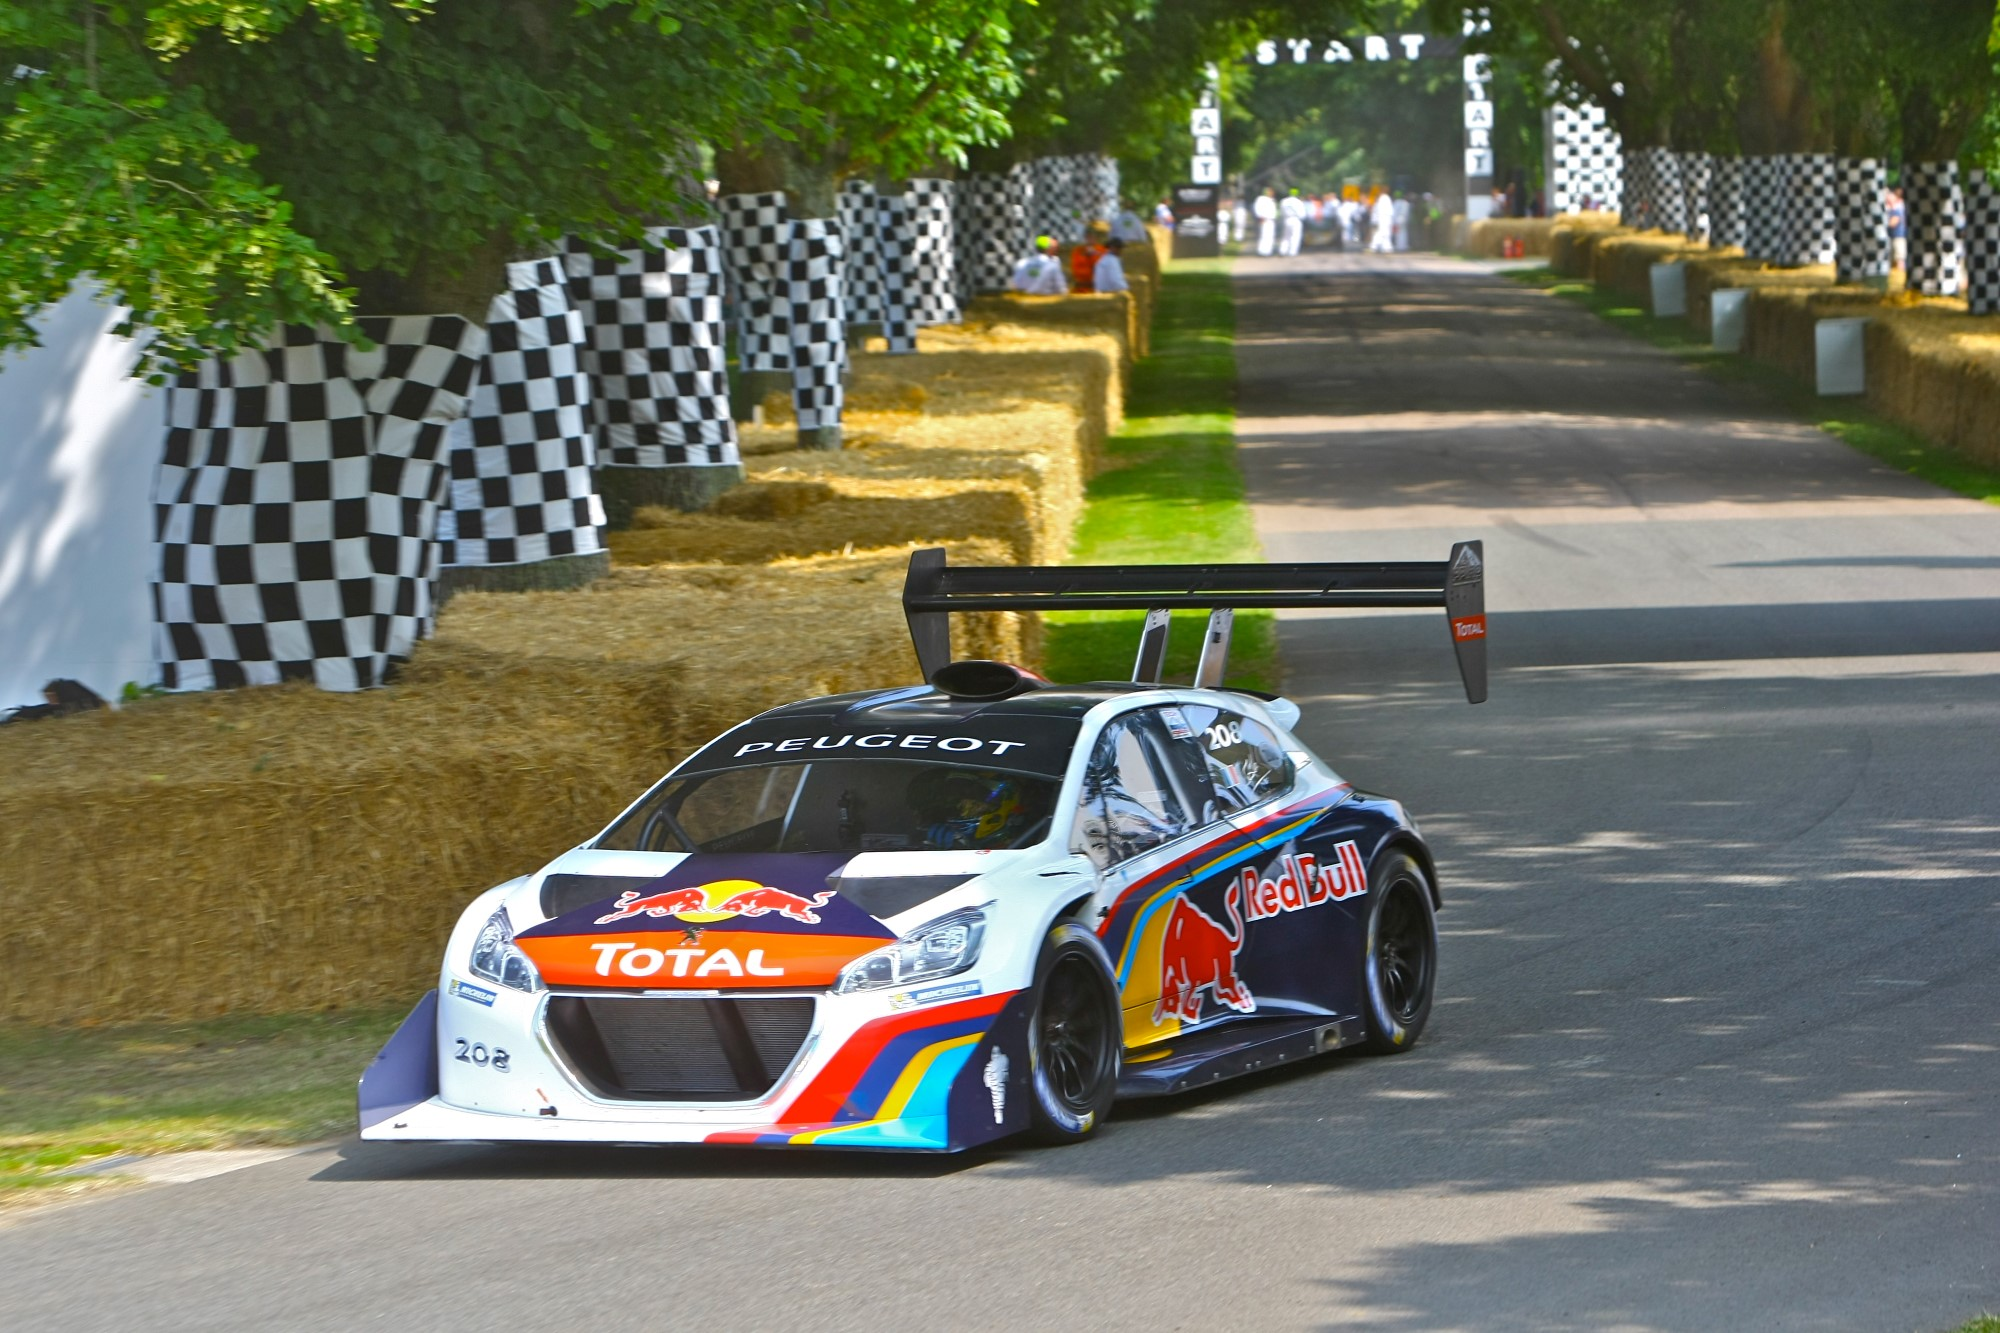 Loeb And Peugeot Pikes Peak Car Set For Record Goodwood